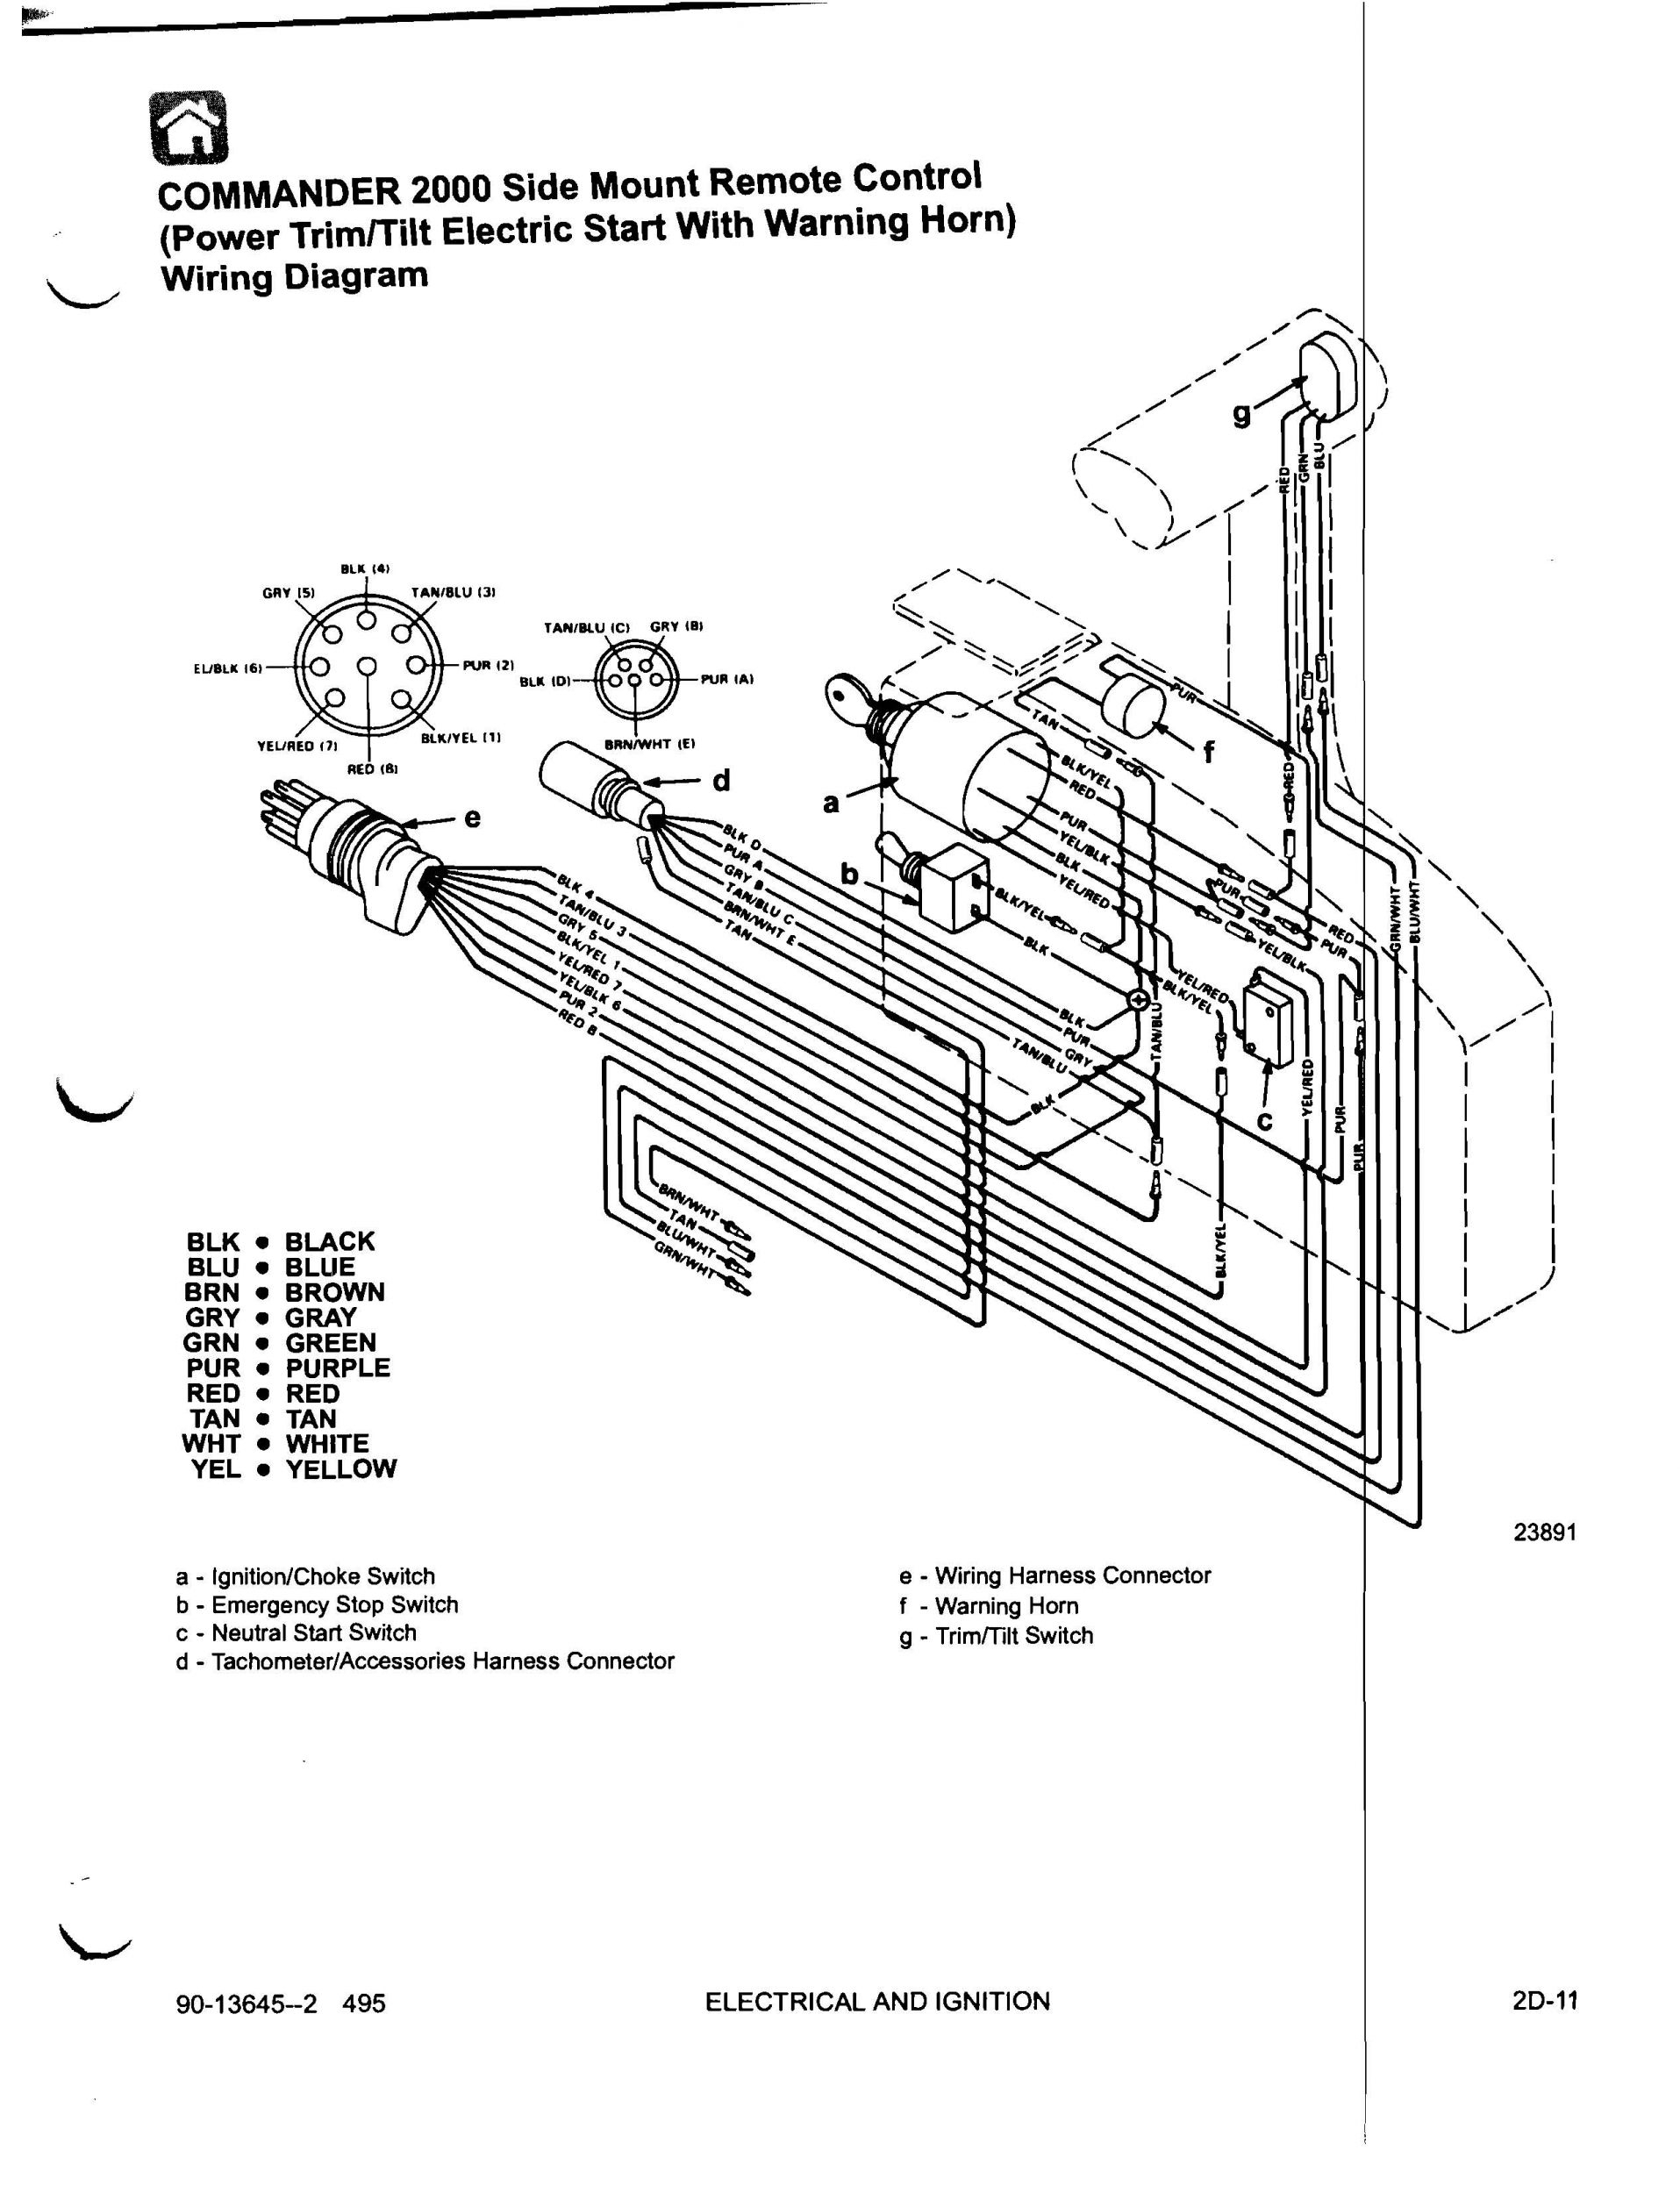 89 Mazda B2200 Parts Diagram in addition OEMCarb together with 05 Scion Tc12v Source At Fuse Box additionally Mazda B2000 Ignition Diagram Html moreover 1930 Model A Wiring Harness For. on mazda b2200 ignition wiring diagram